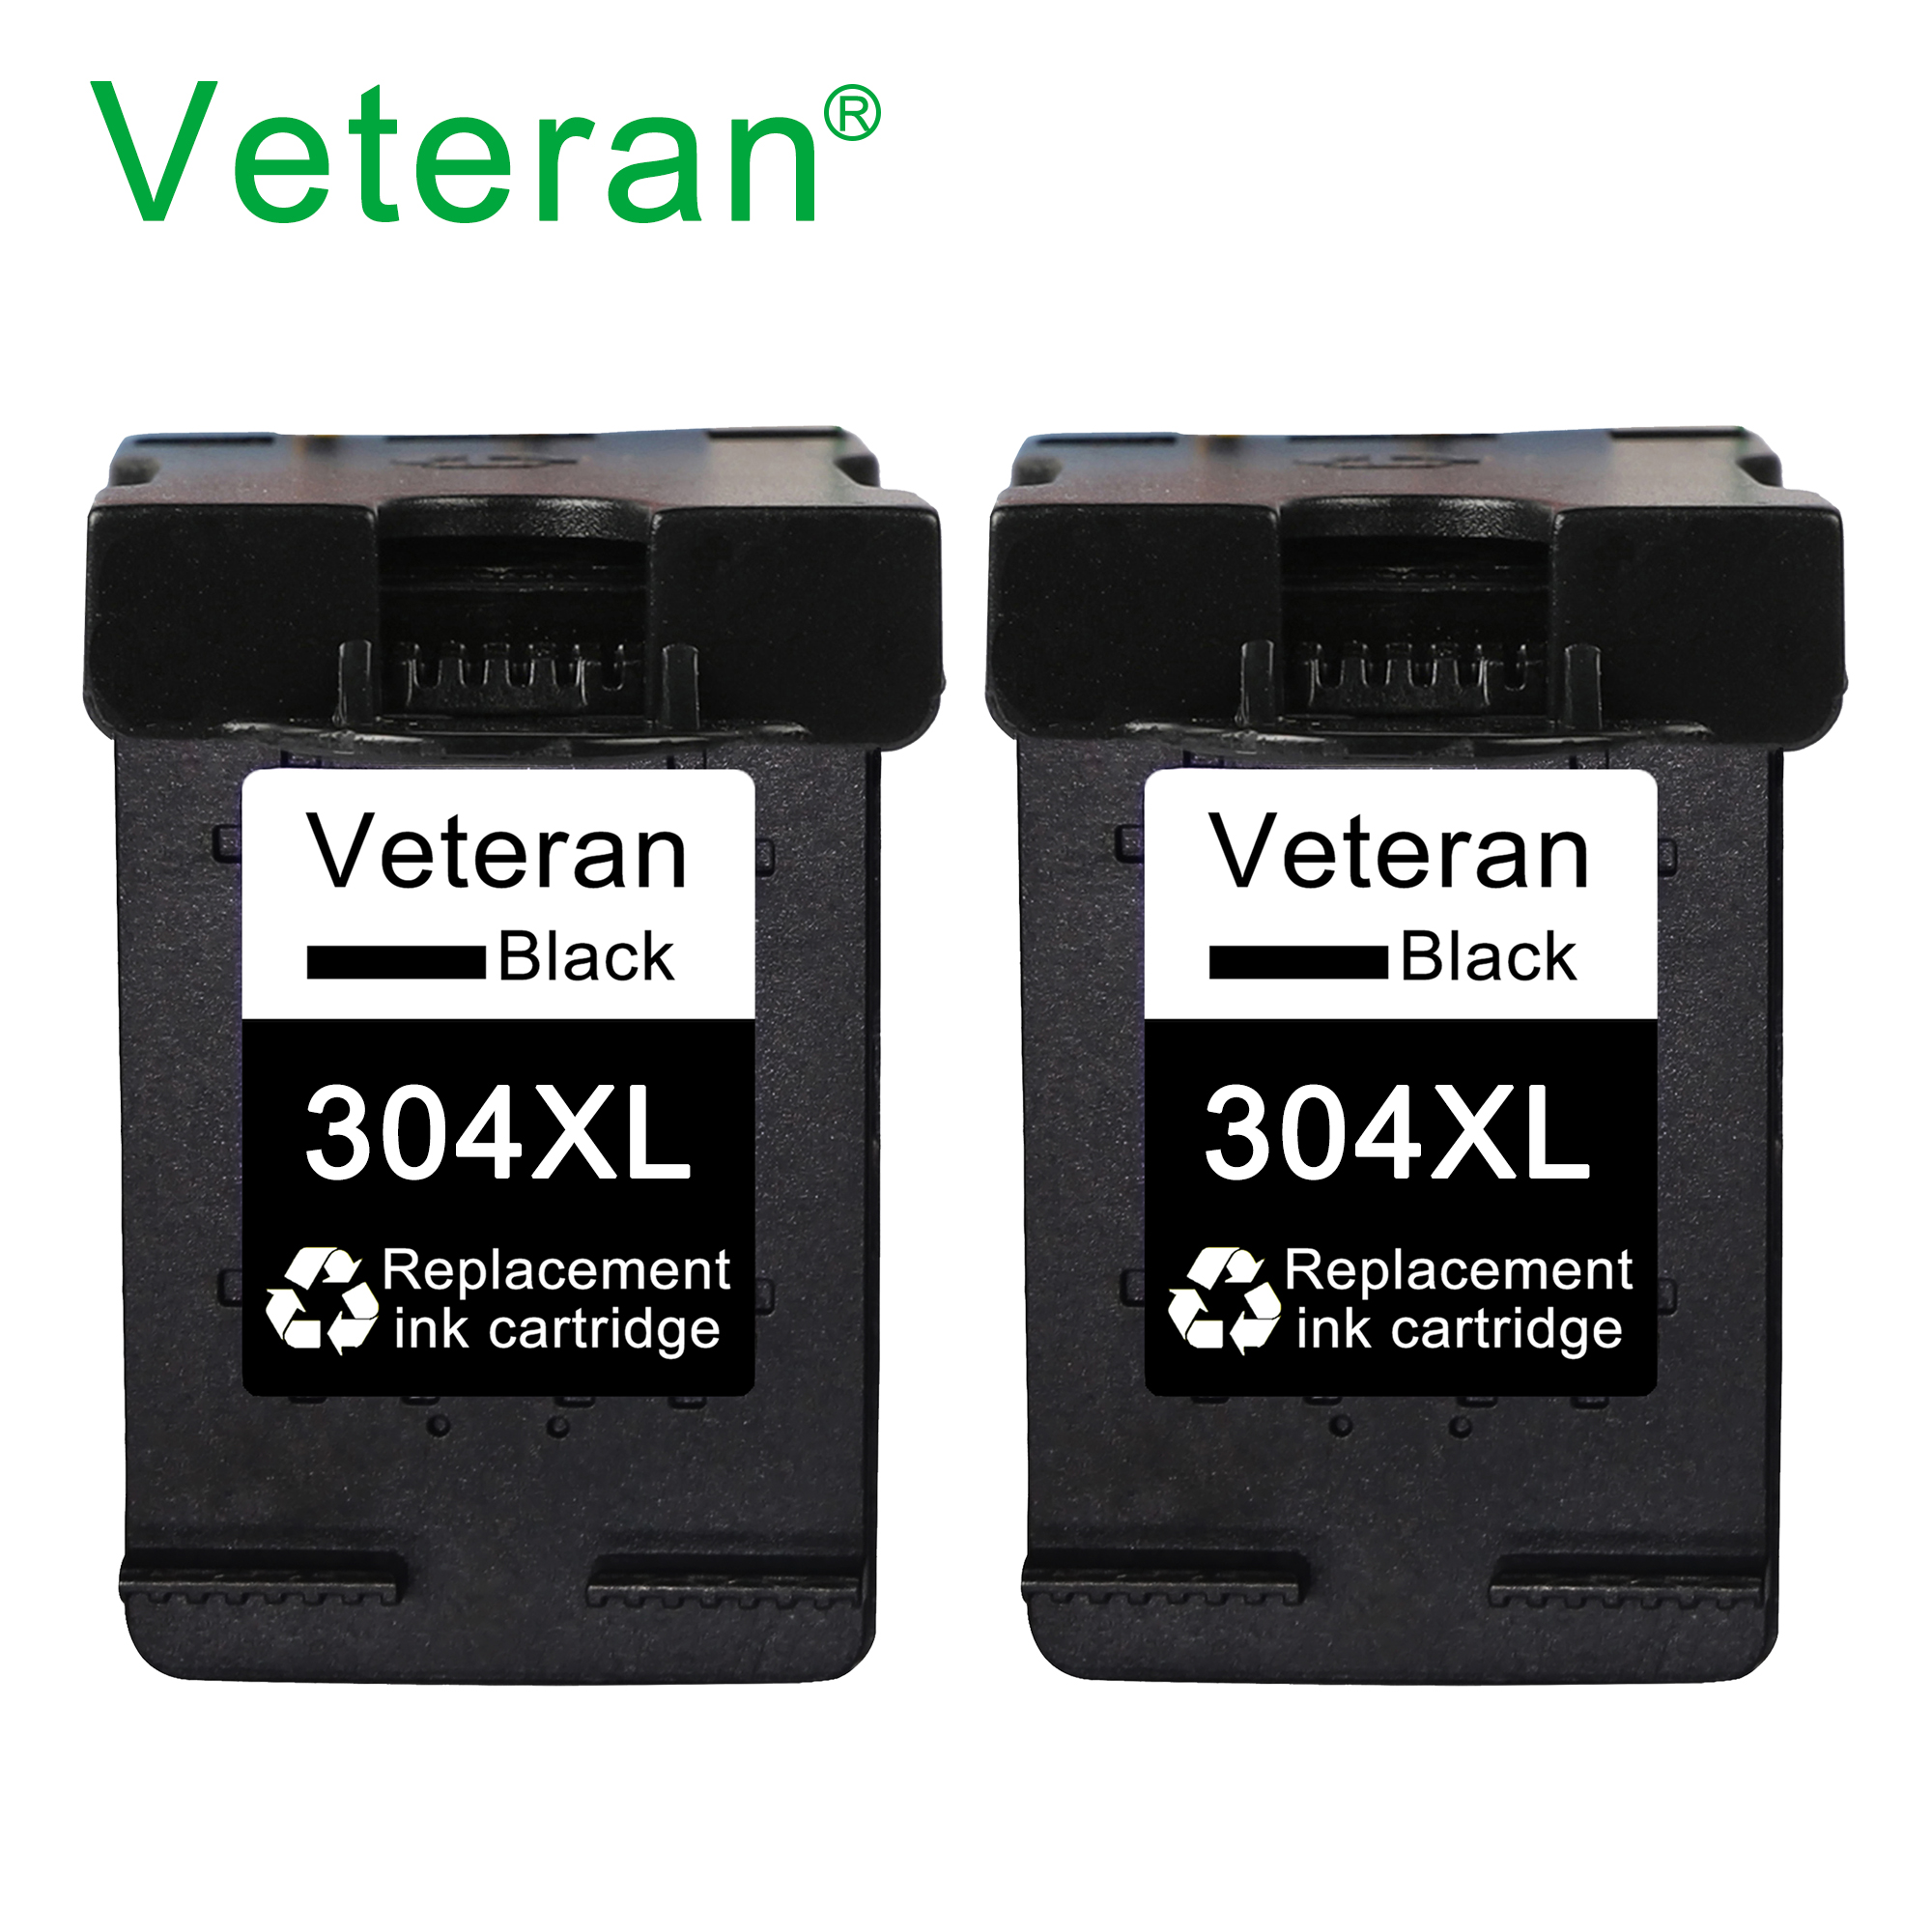 Veteran refilled ink cartridge 304XL for hp304 hp 304 xl new chip for hp envy 5032 5030 5020 5010 3720 3721 3730 3758 printers